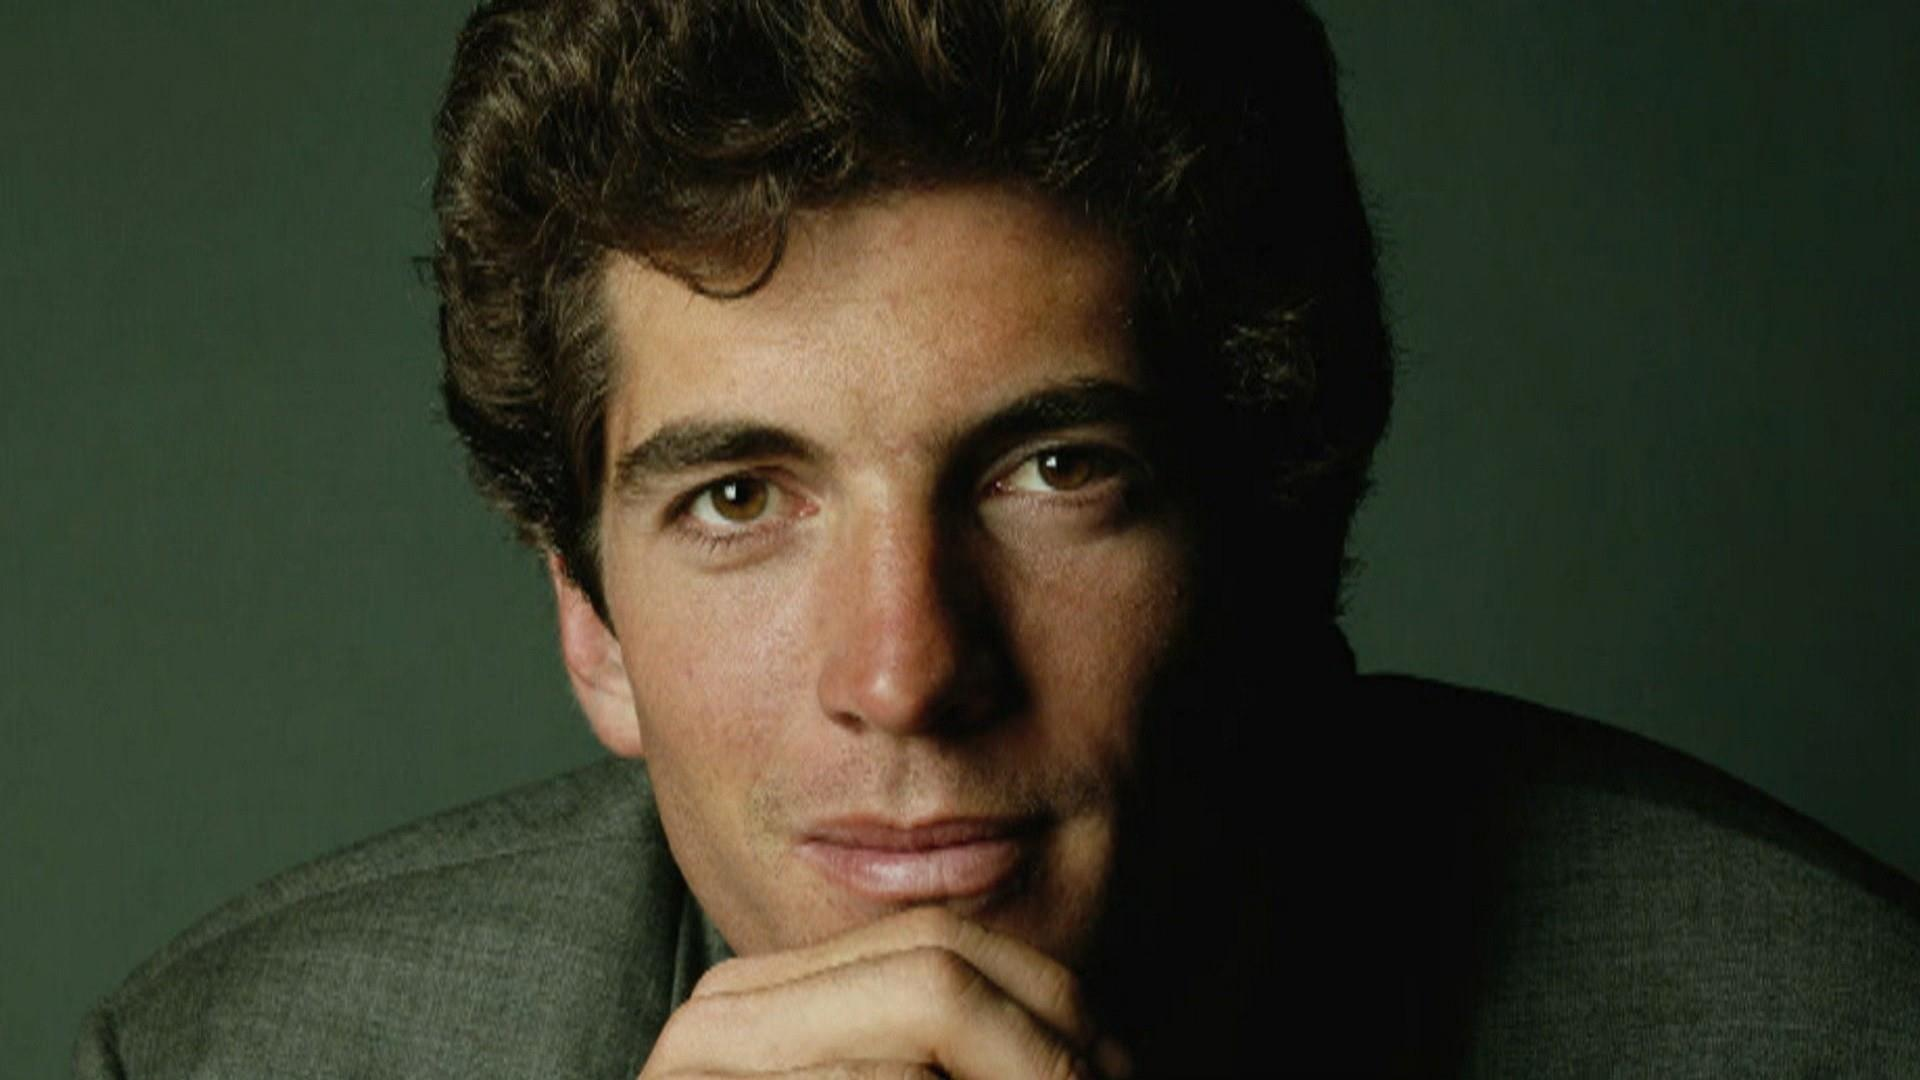 Close friend of JFK Jr. shares memories of the man she knew